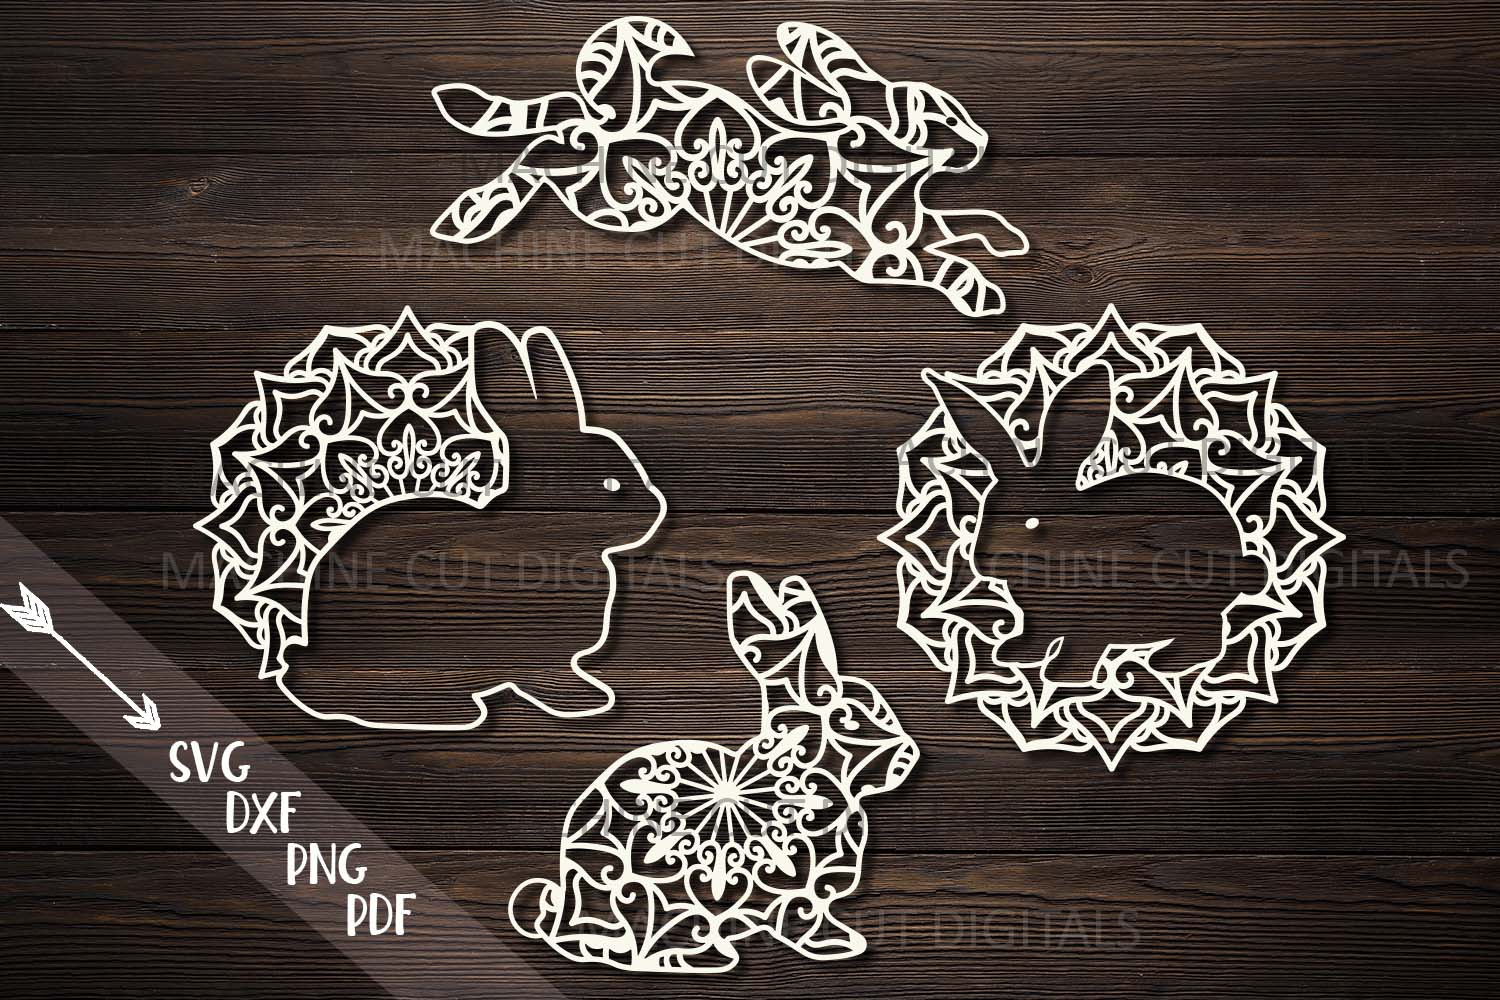 Mandala Easter bunnies cut out set svg dxf pdfcutting files example image 1